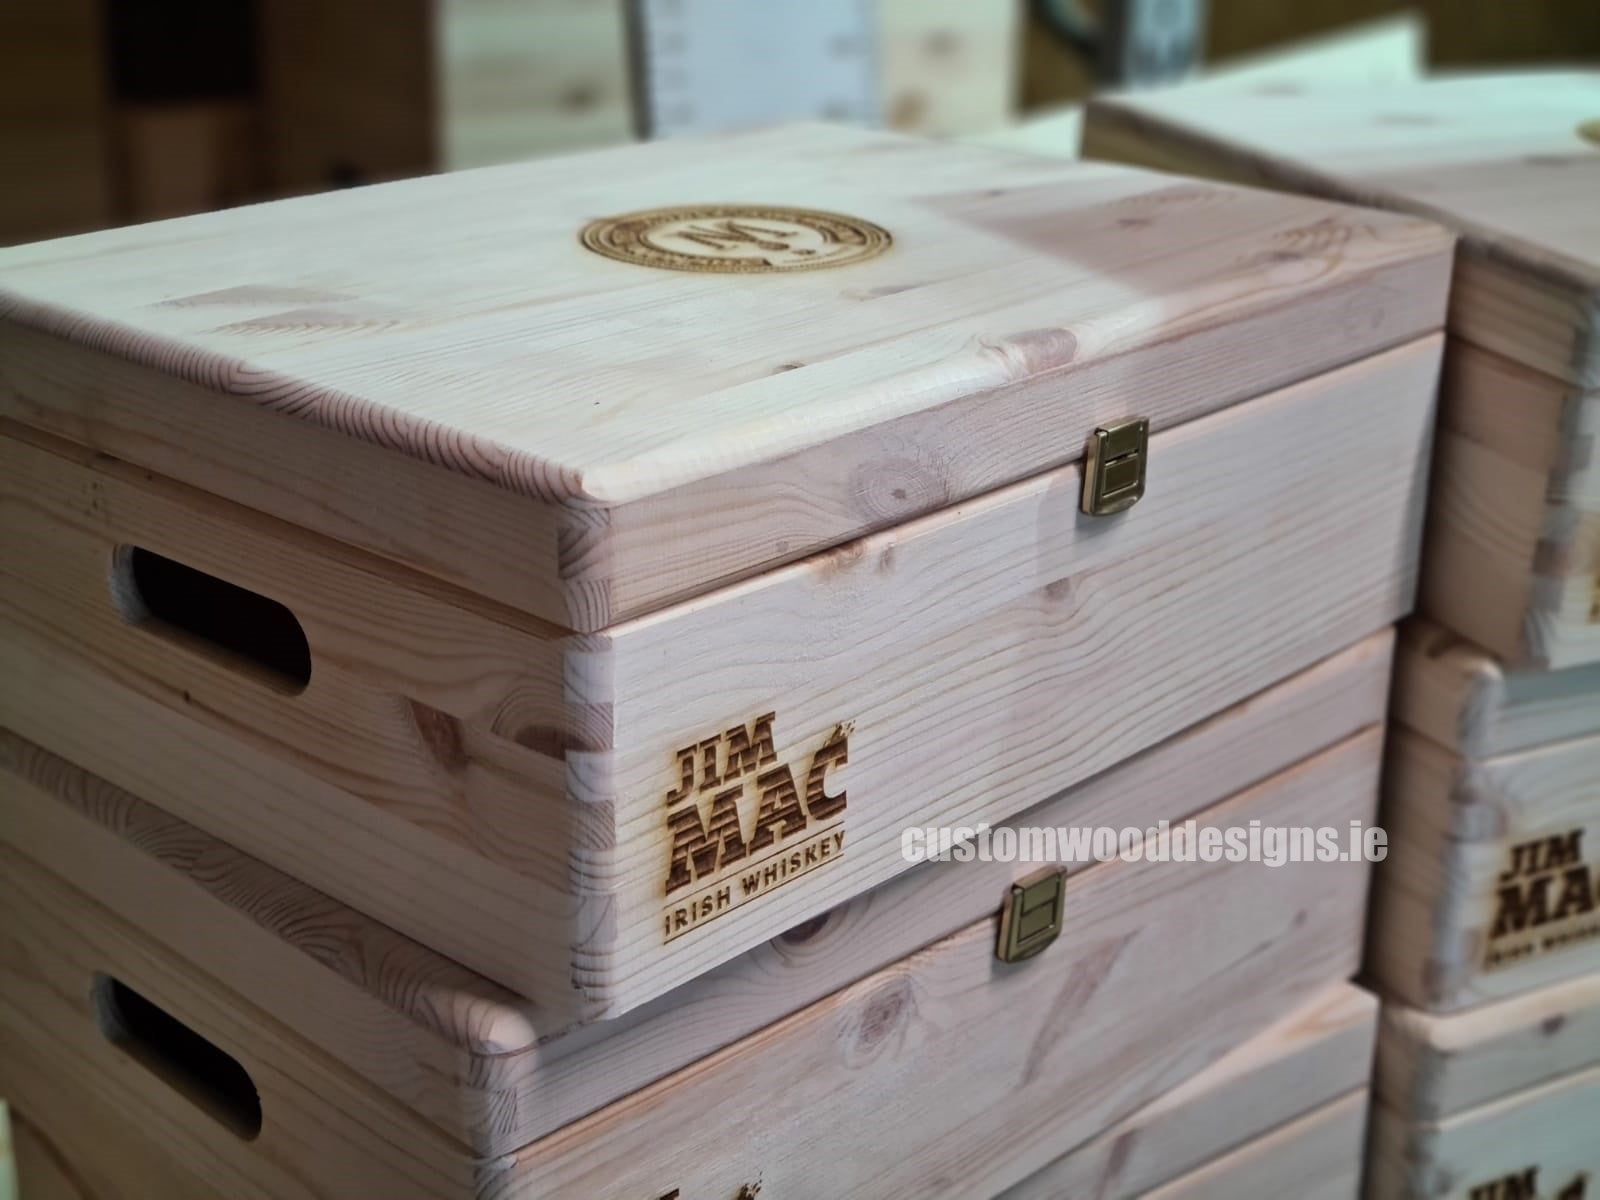 Branded wooden boxes Ireland corporate gift boxes display boxes SWAG Boxes ireland Company gifts eco gifts custo (4)